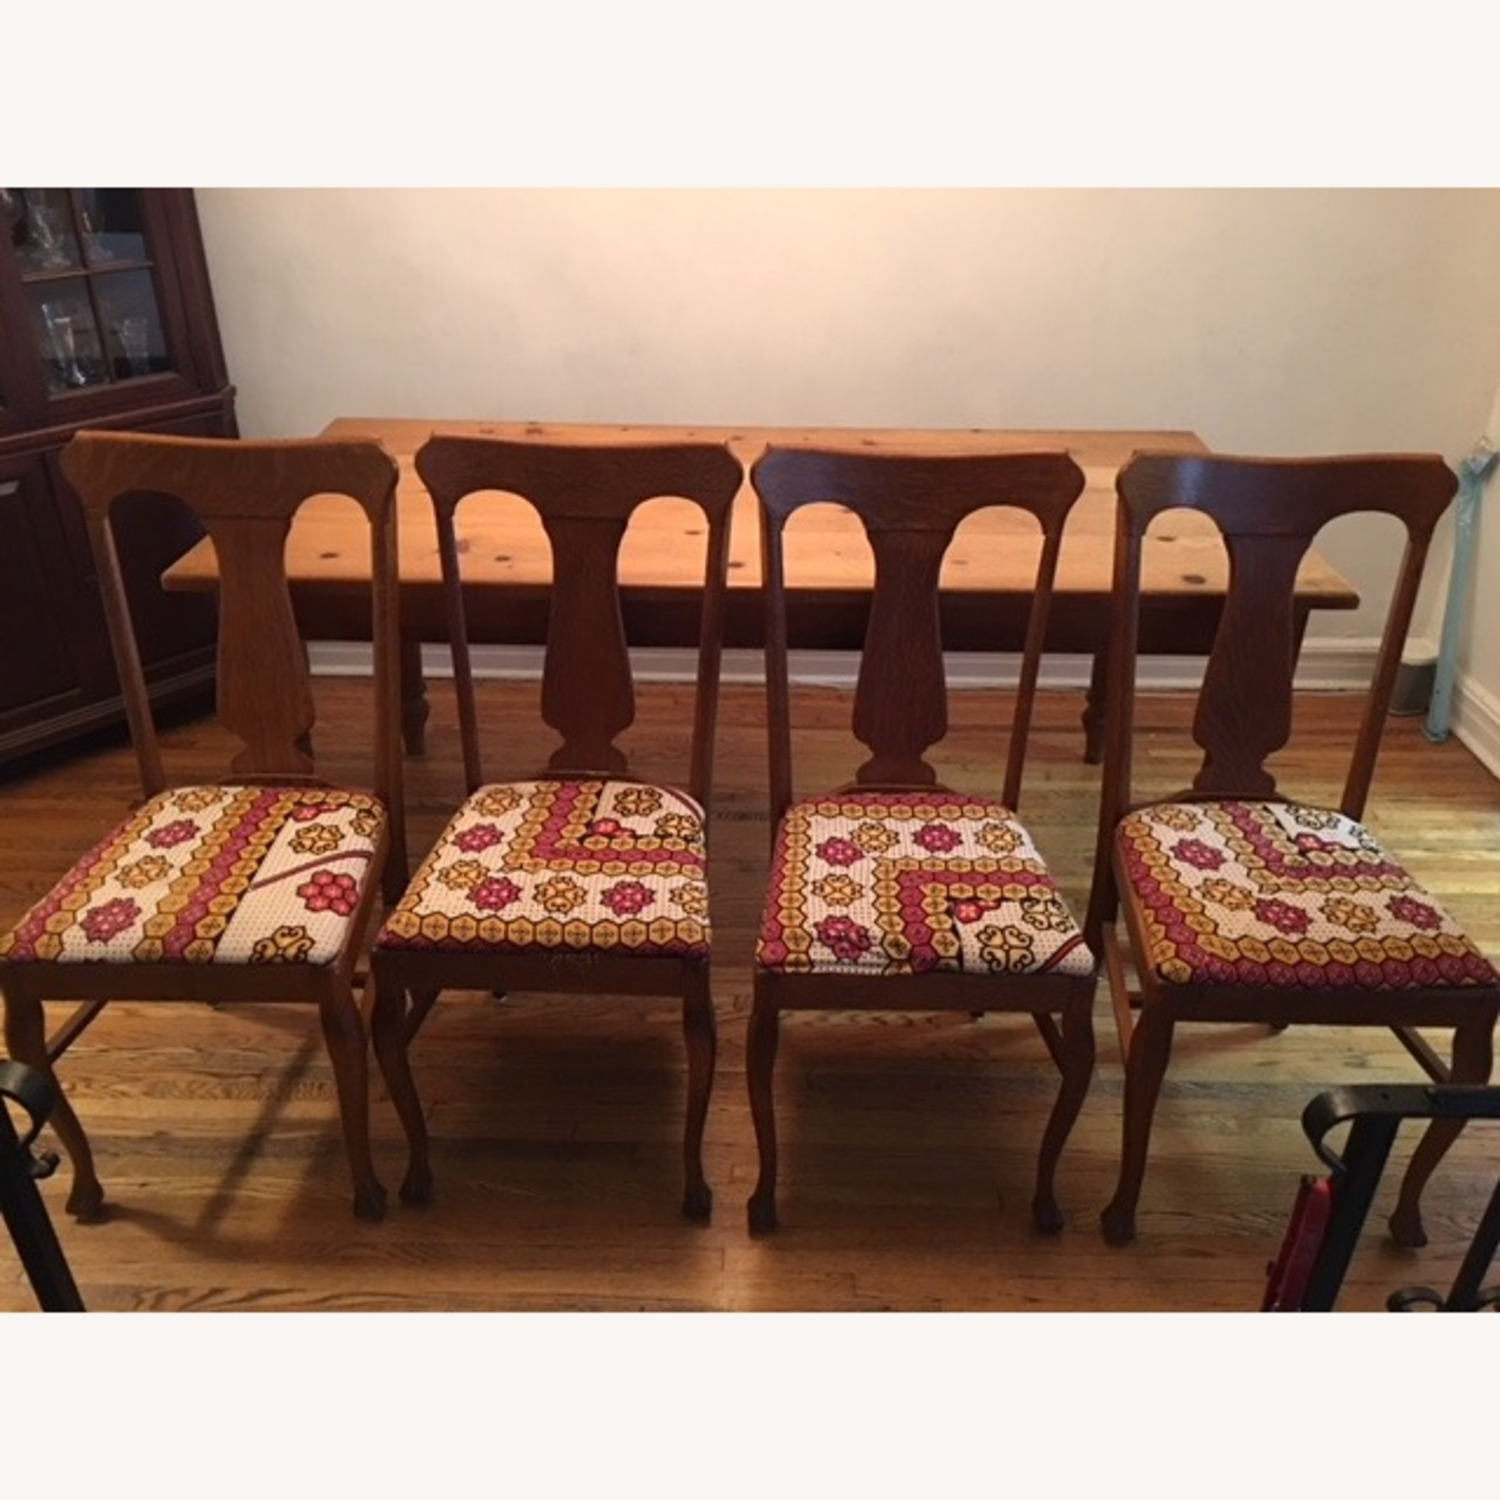 4 Farm Dining Chairs - image-1